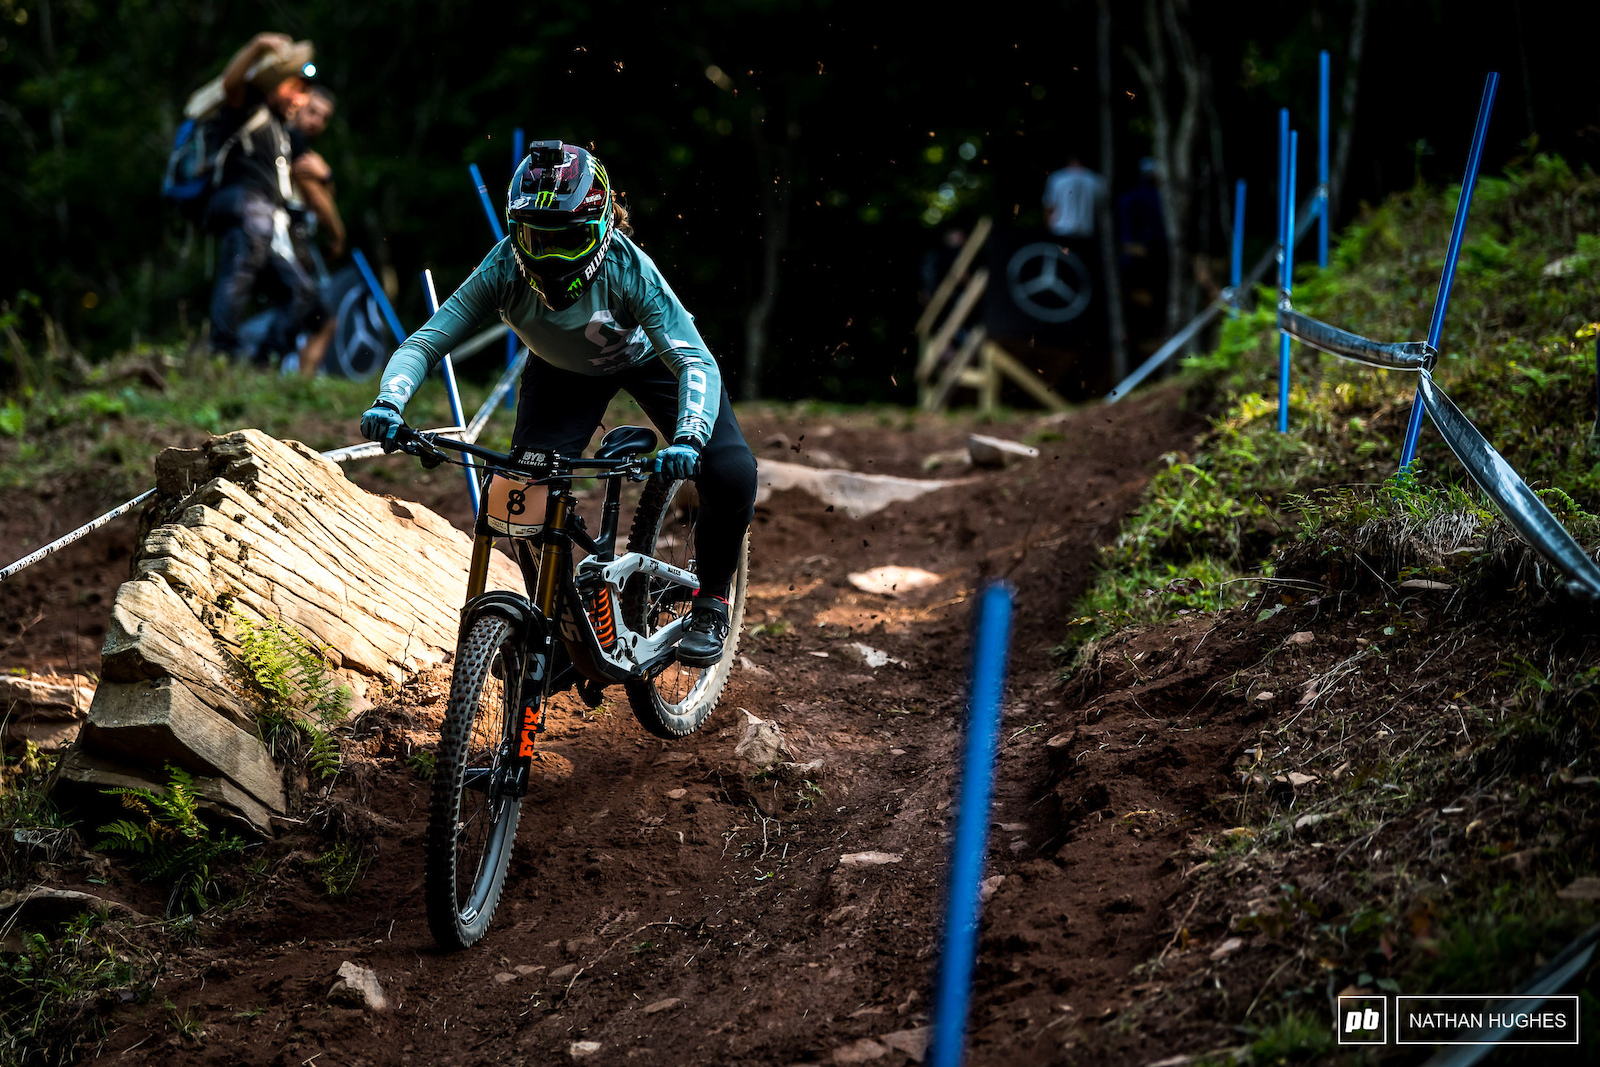 Cabirou dominated here back in 2019 so it was no surprise to see her hit the podium again albeut 5.7 seconds shy of the win.